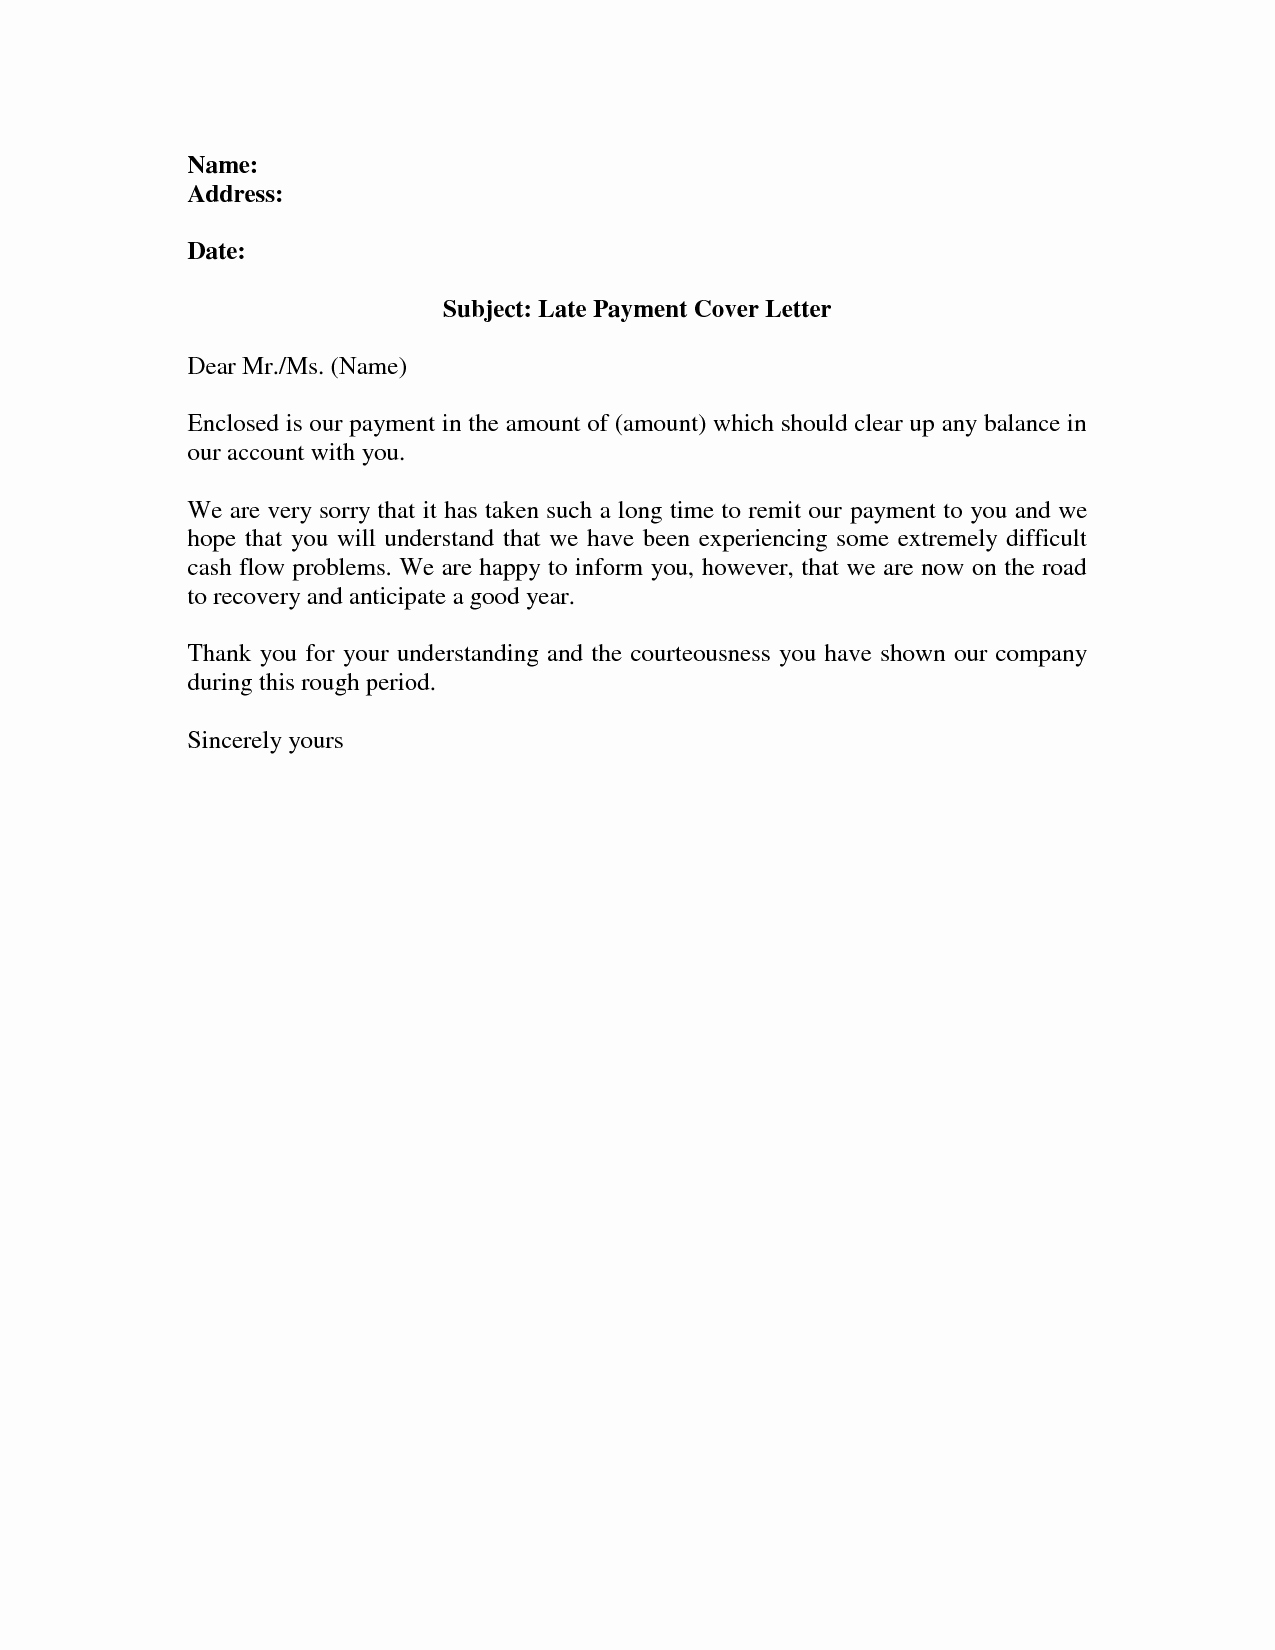 Late Payment Explanation Letter Elegant 28 Of Late Payment Letter Template